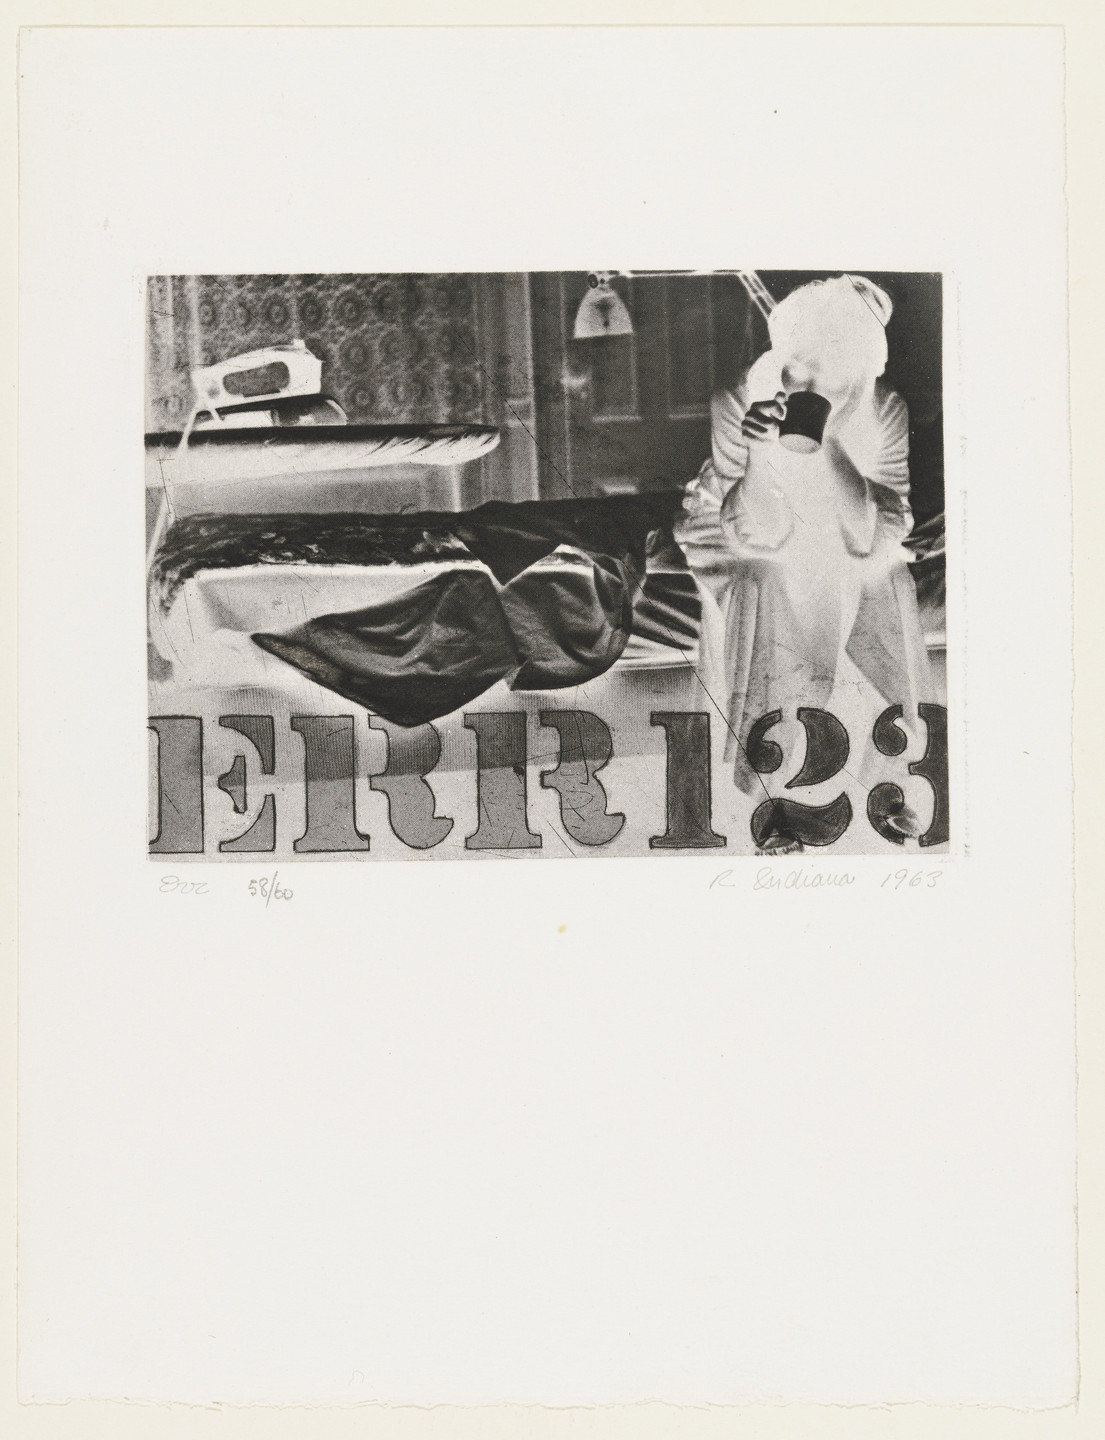 Robert Indiana. Err (plate 9) from The International Anthology of Contemporary Engraving: The International Avant-Garde, Volume 5: America Discovered (Anthologia internazionale dell'incisione contemporanea: L'Avanguardia internazionale: Volume 5: Scoperta dell'America). 1963, published 1964